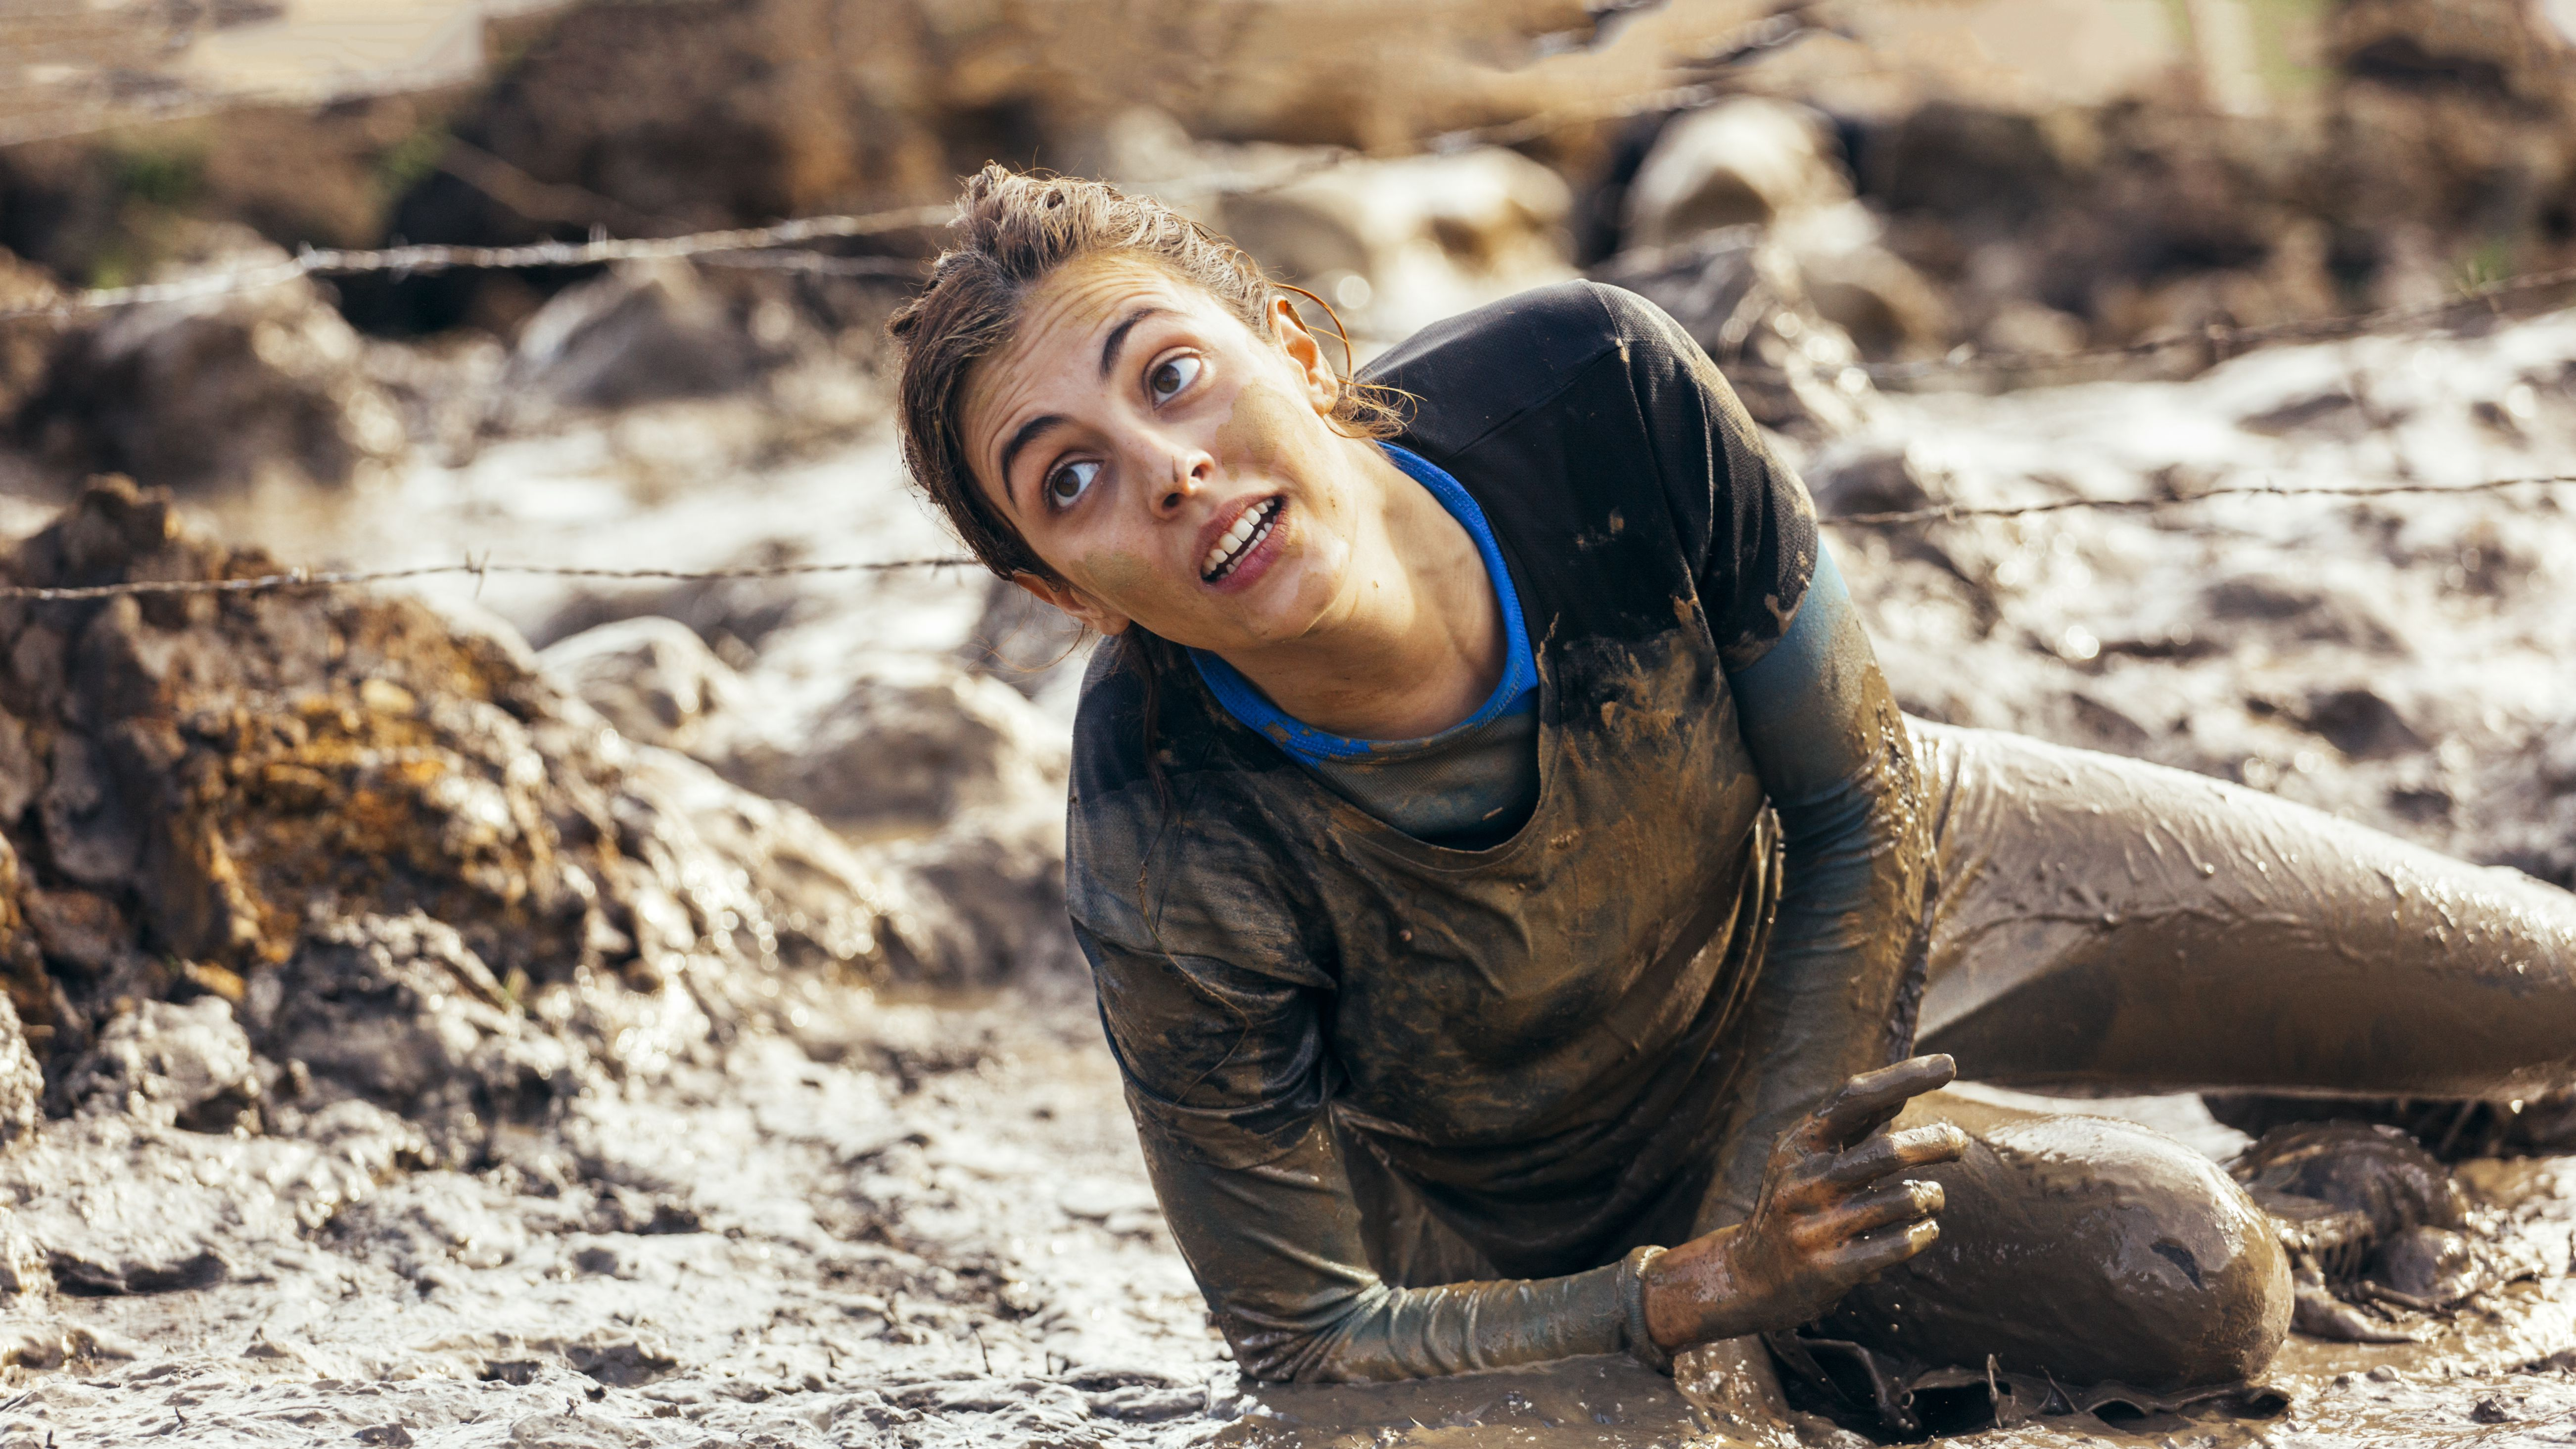 What To Wear For Obstacle Races And Mud Runs